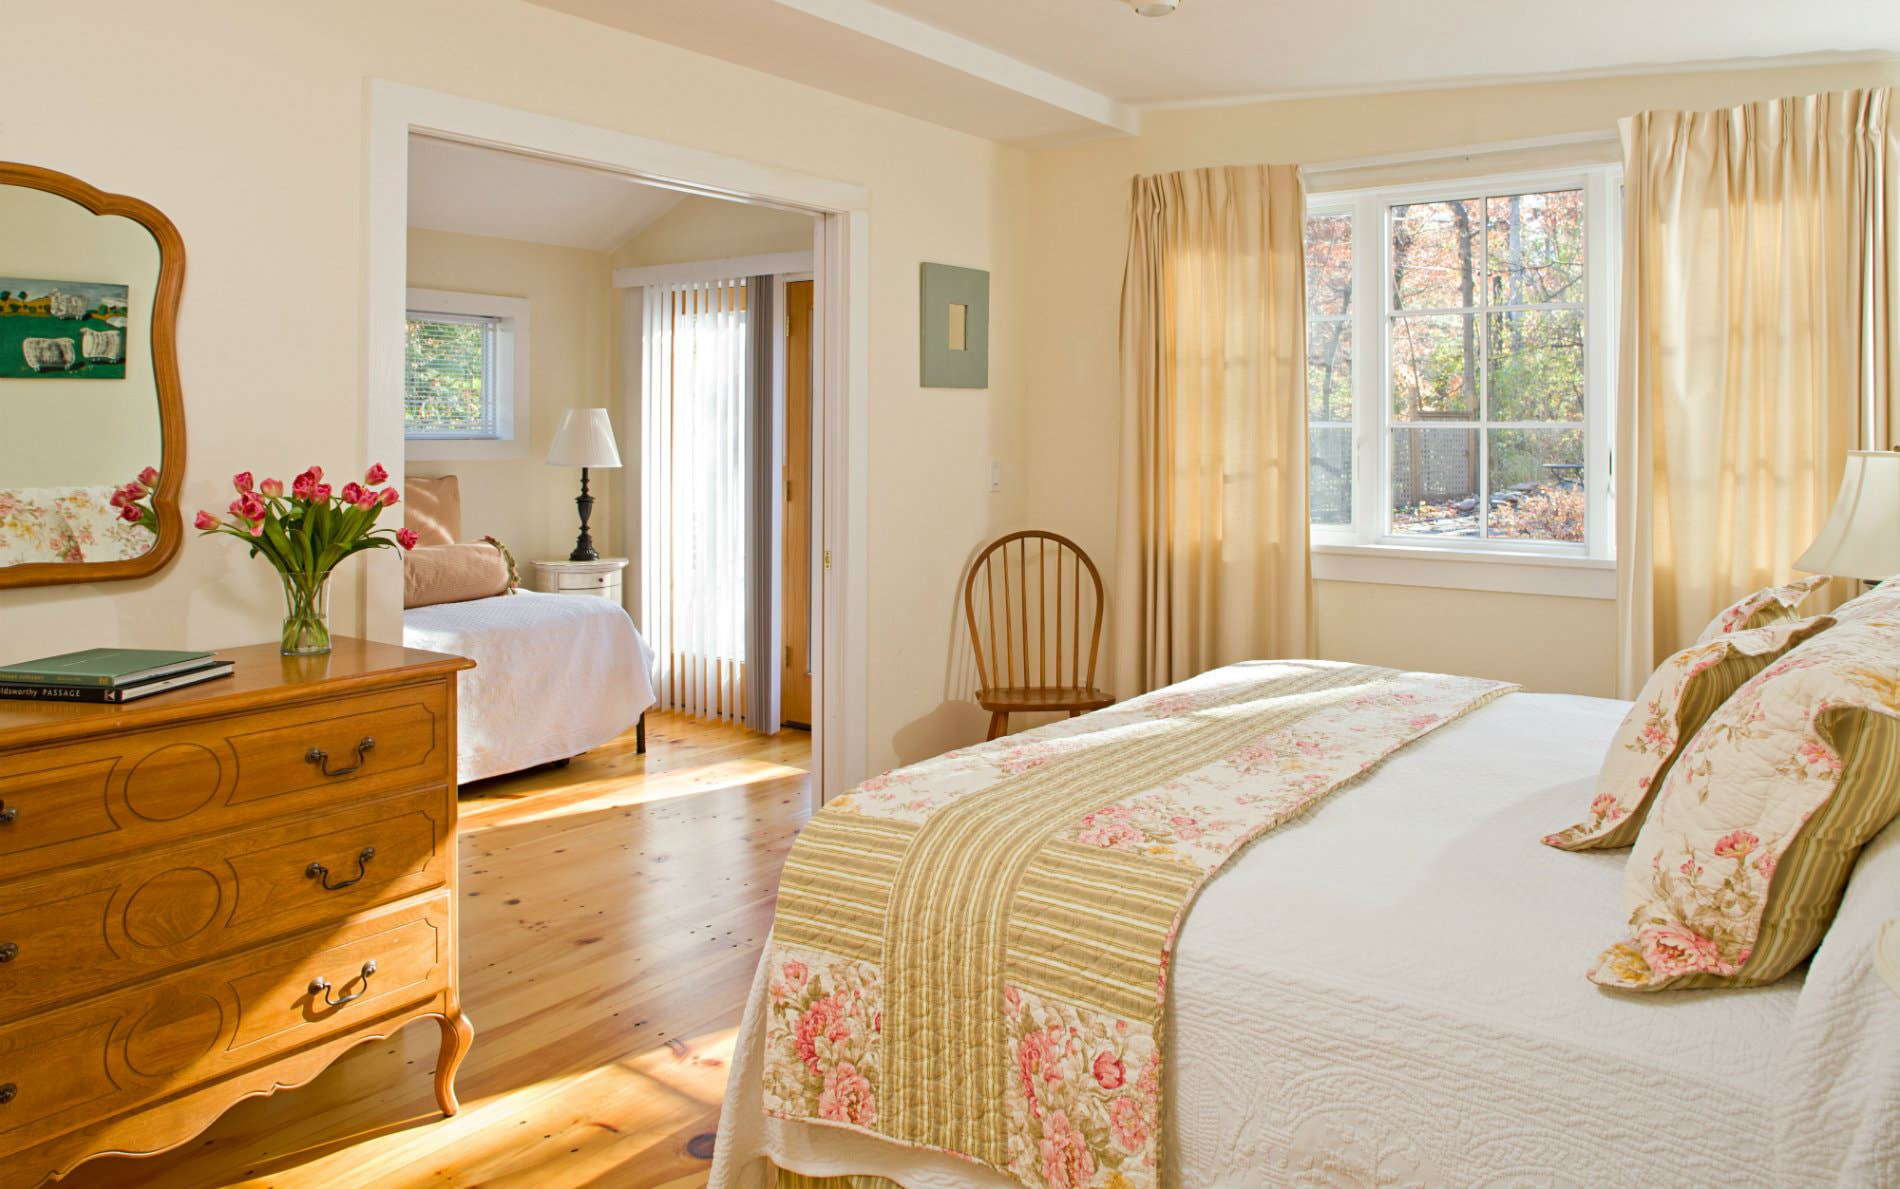 Warm and cozy beige and white adjoining rooms with wood floors, lots of natural light, and white covered beds